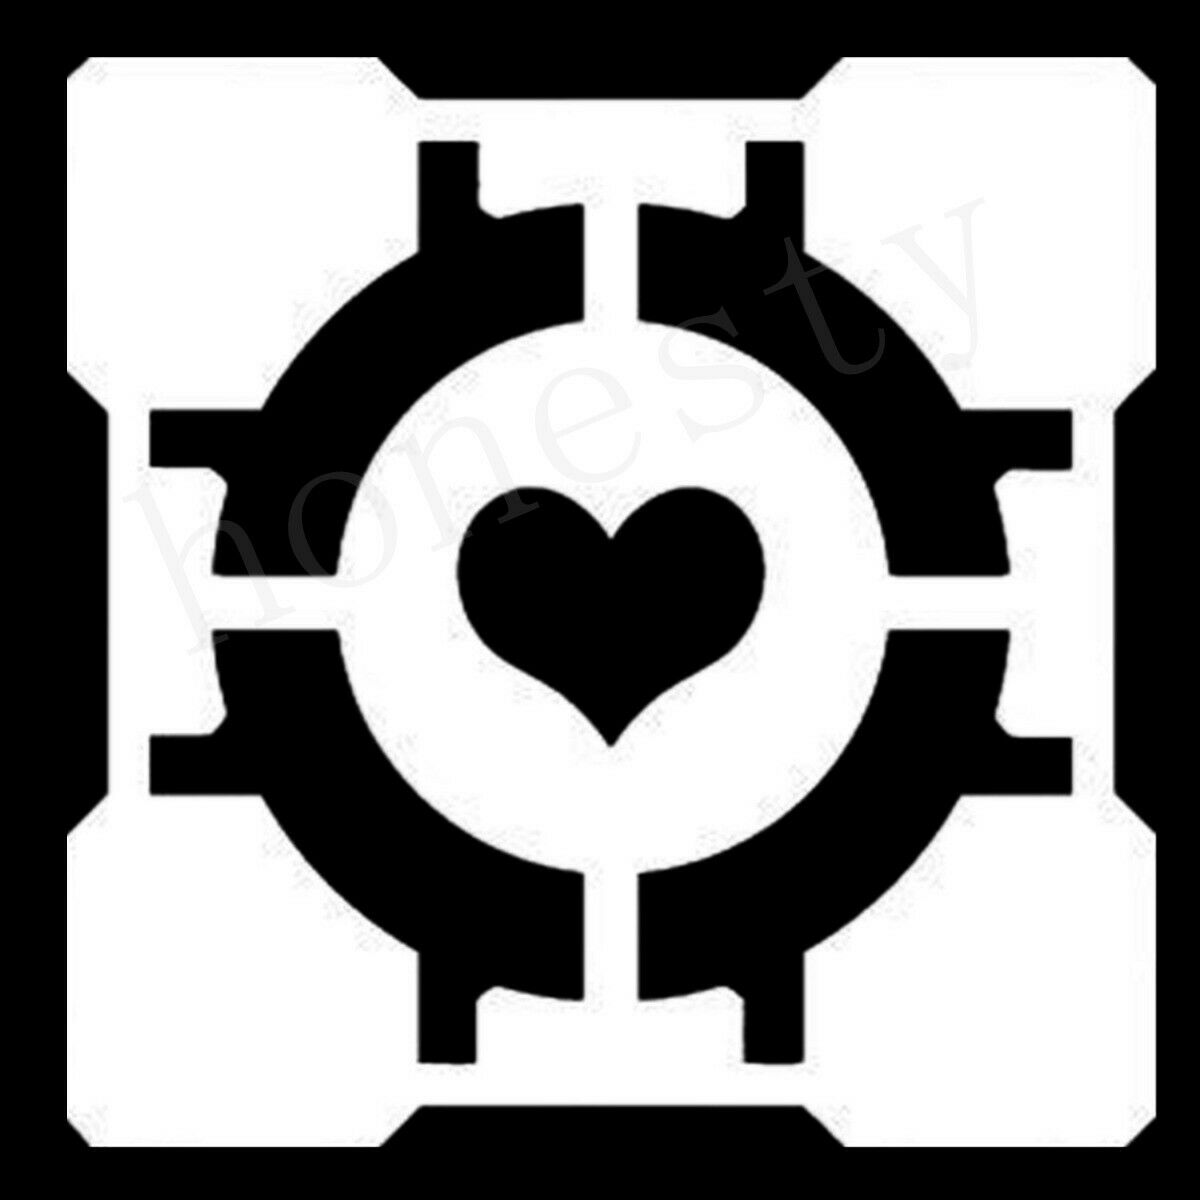 Details about Companion Cube Portal Half Life Gamer Window Auto Car Door  Decals Stickers.